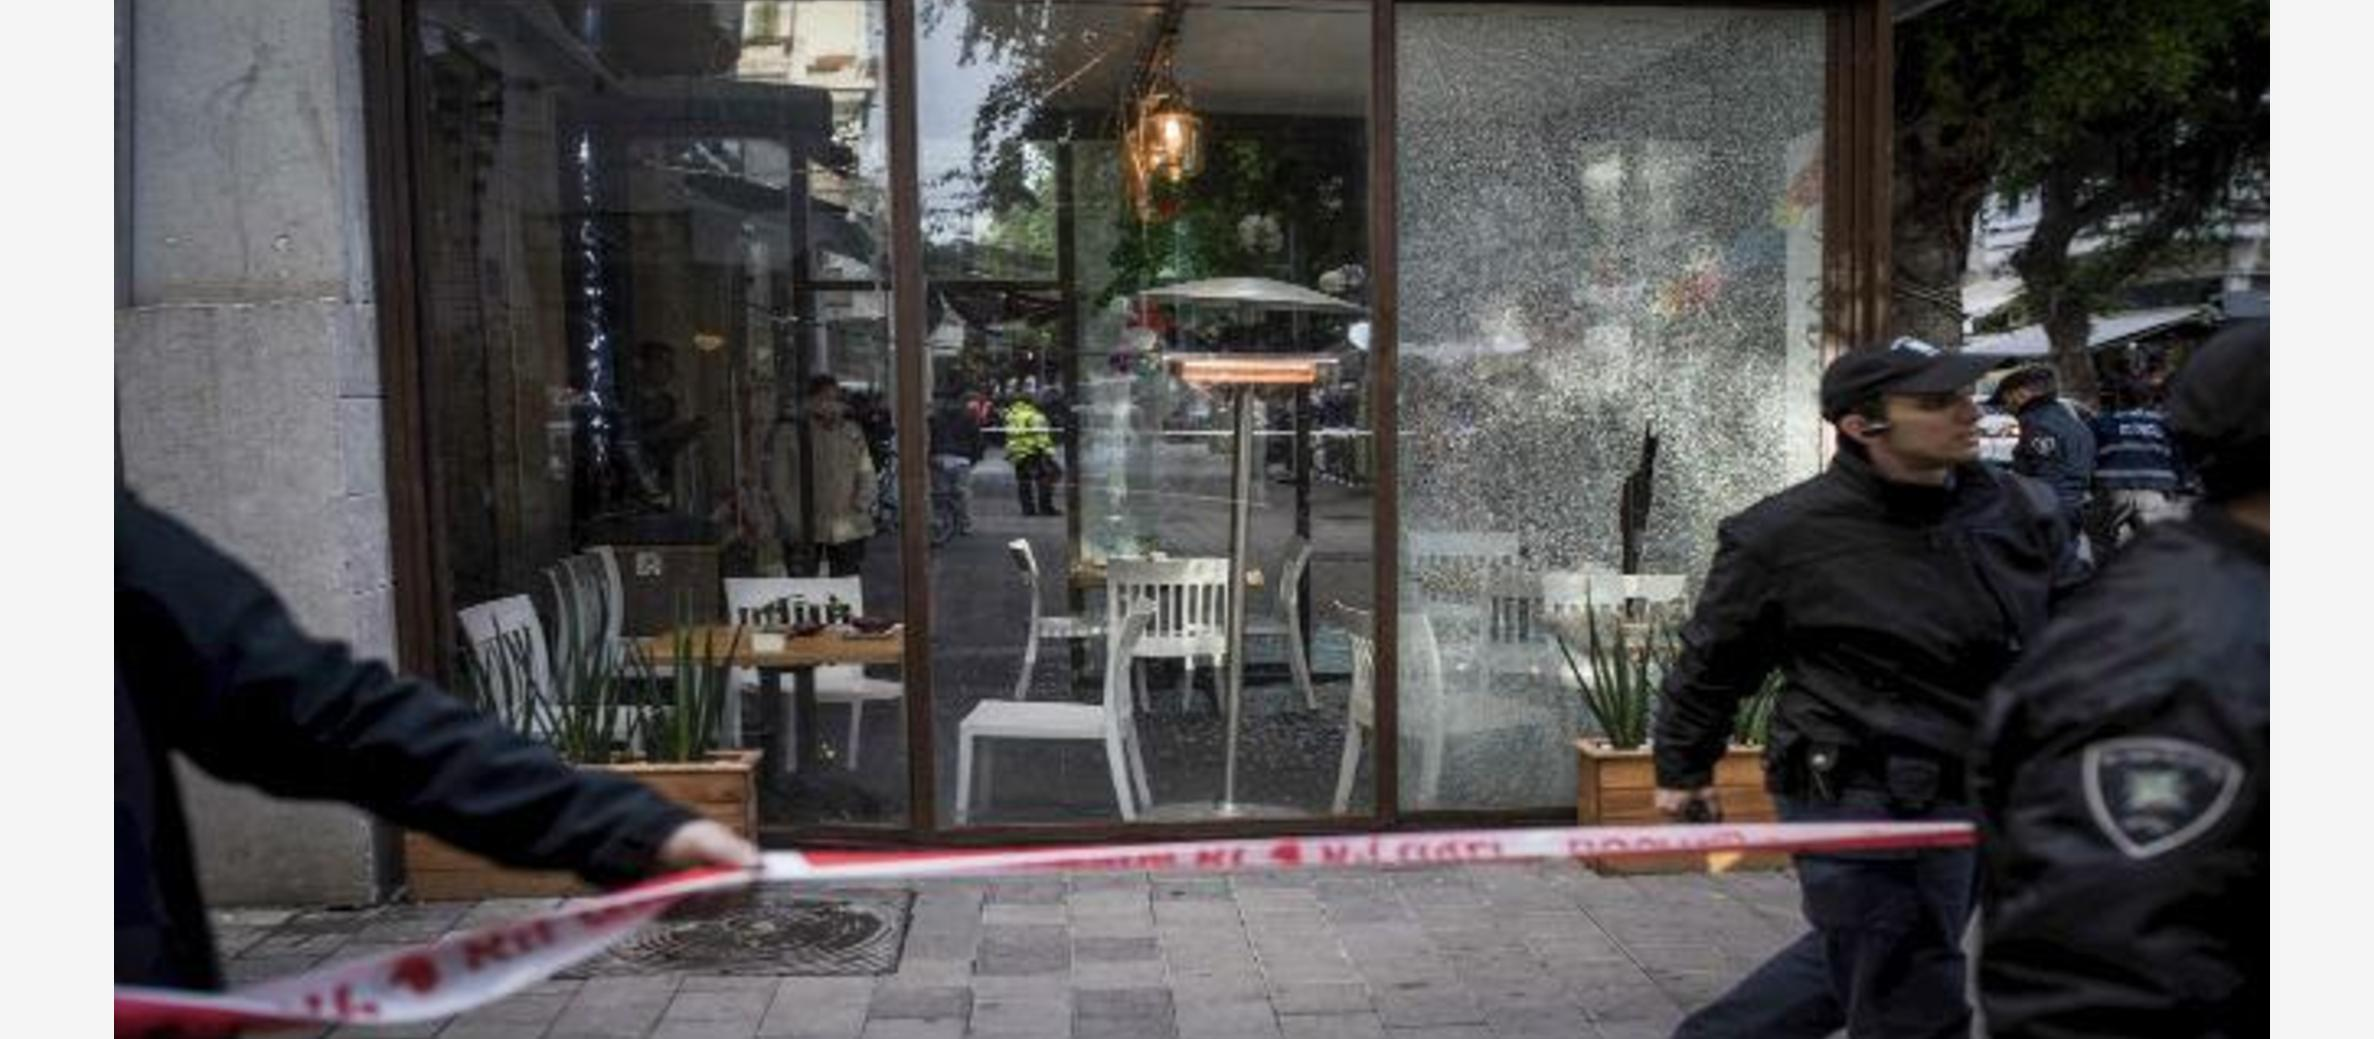 Assailant in Tel Aviv bar attack remains at large as city remains on alert